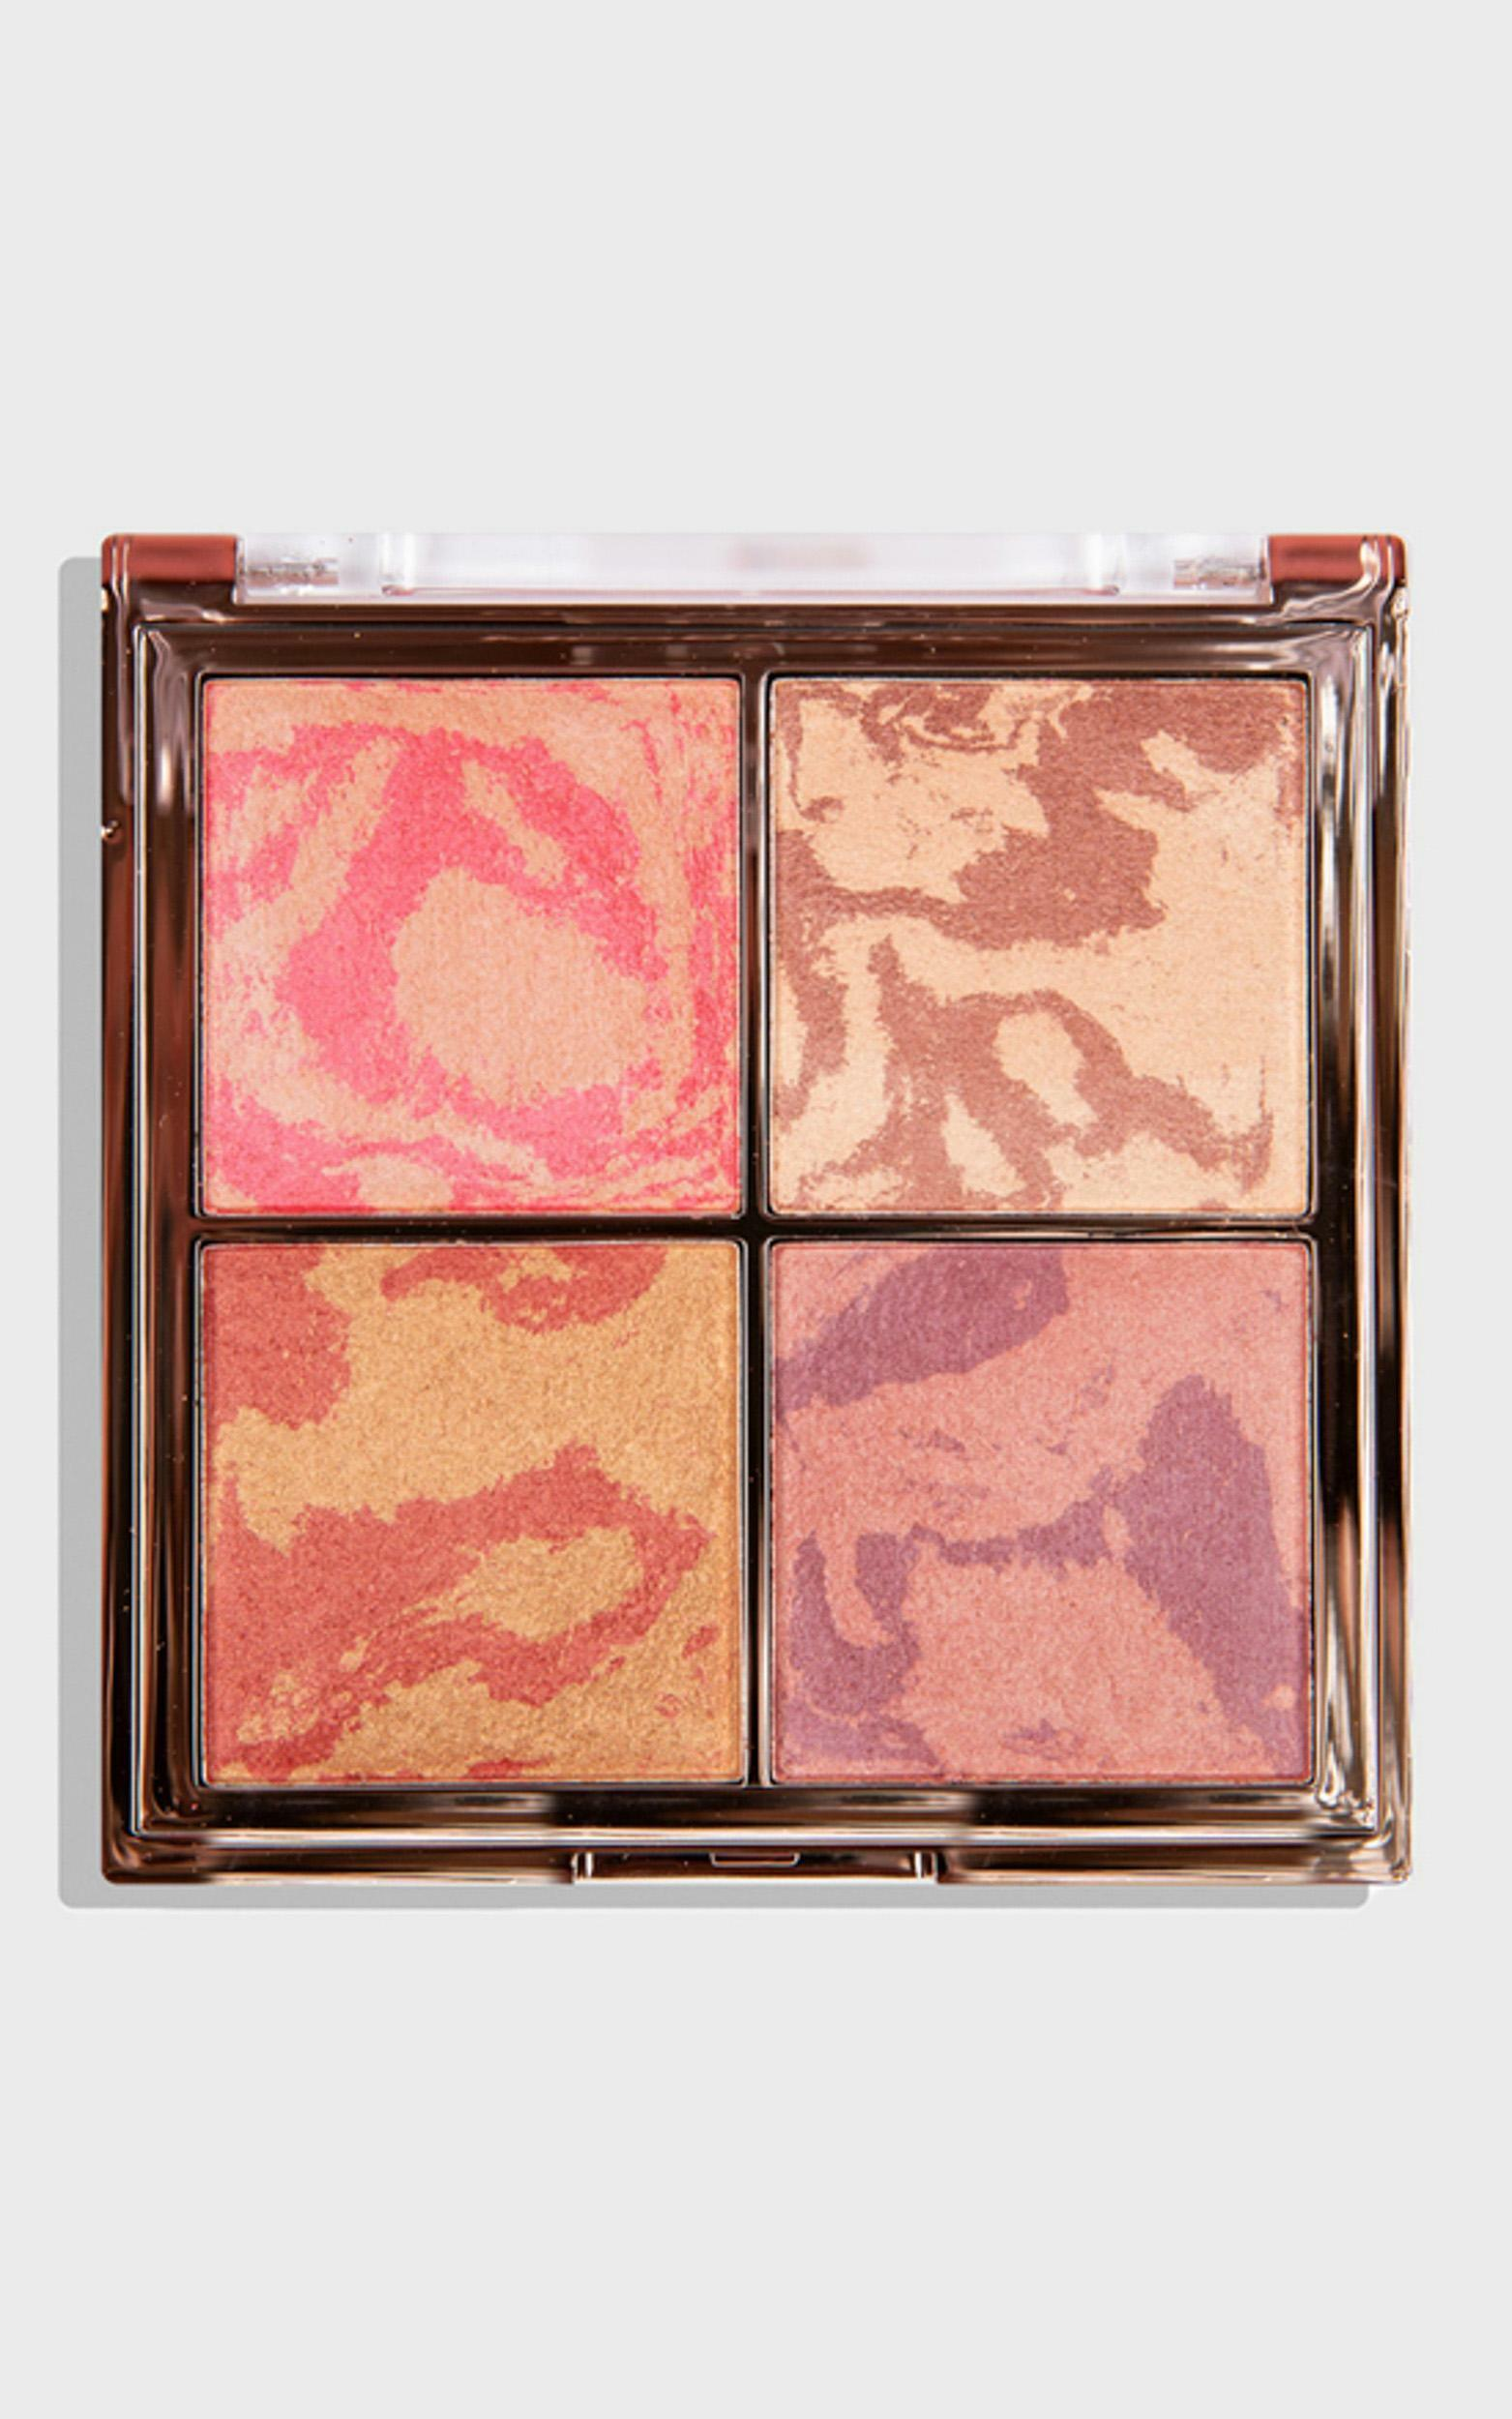 MCoBeauty - The Beauty Edit Highlight & Glow Quad in Multi, MLT1, hi-res image number null